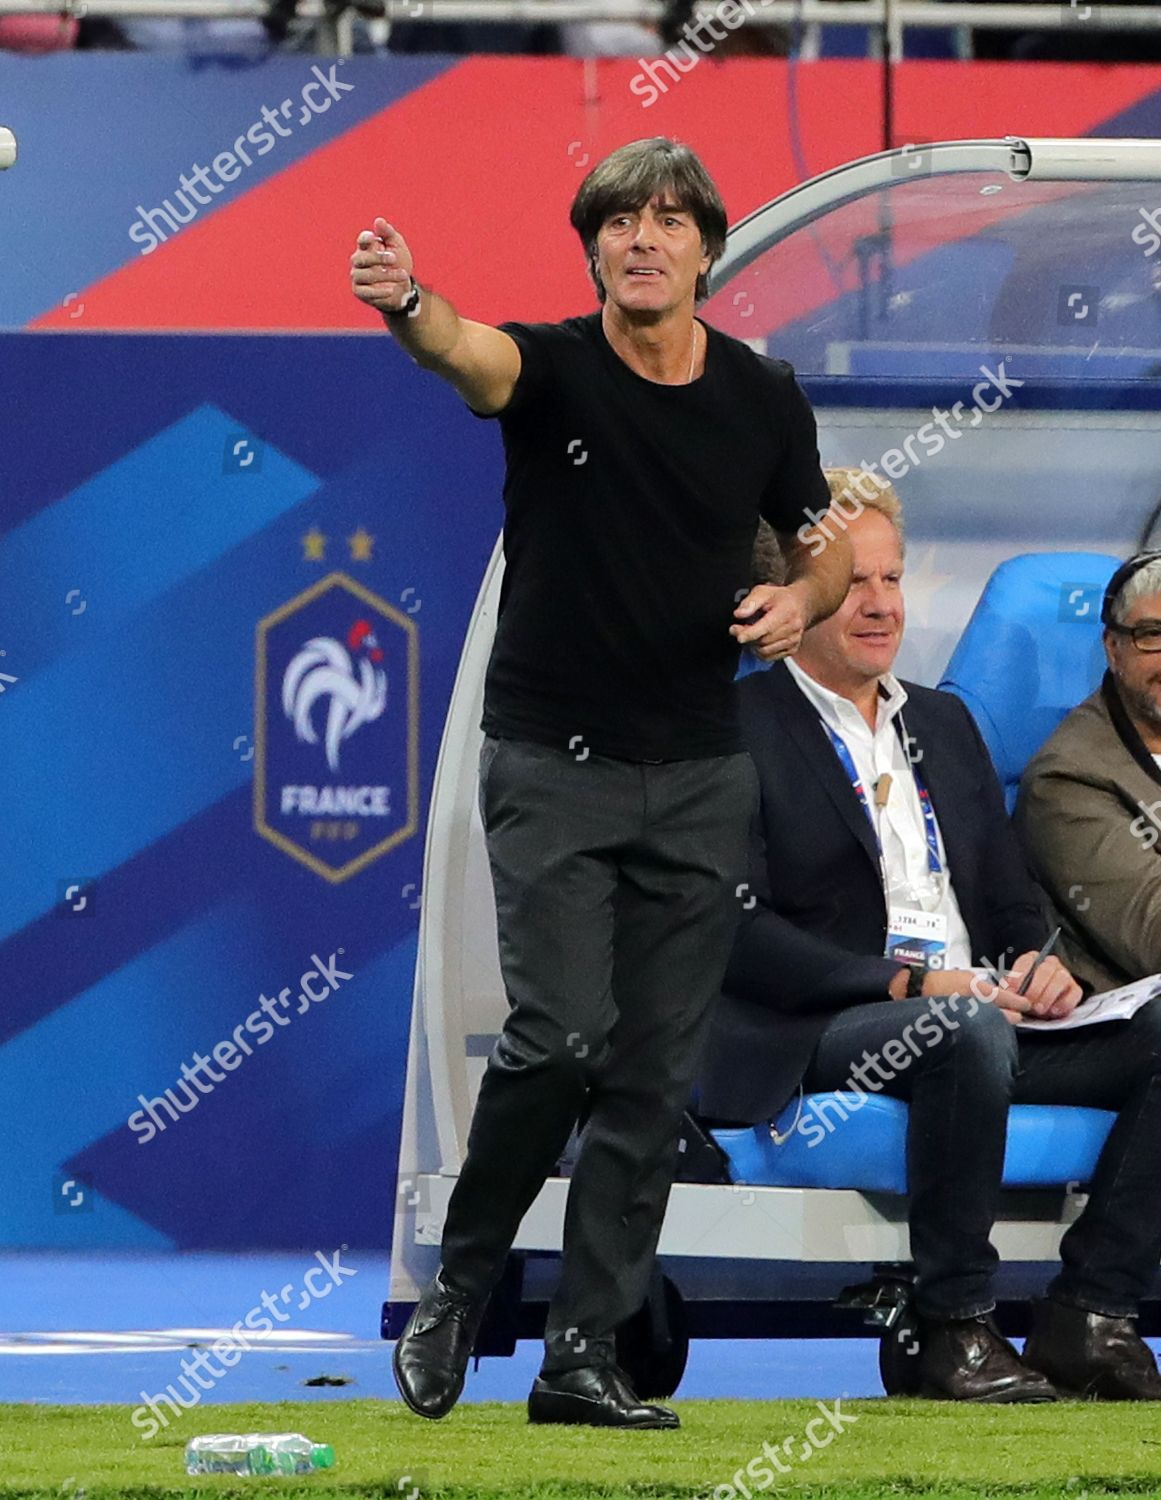 8bb742051 Football: UEFA Nations League, Paris, Frankreich Stock Image by Pixathlon  for editorial use, Oct 16, 2018